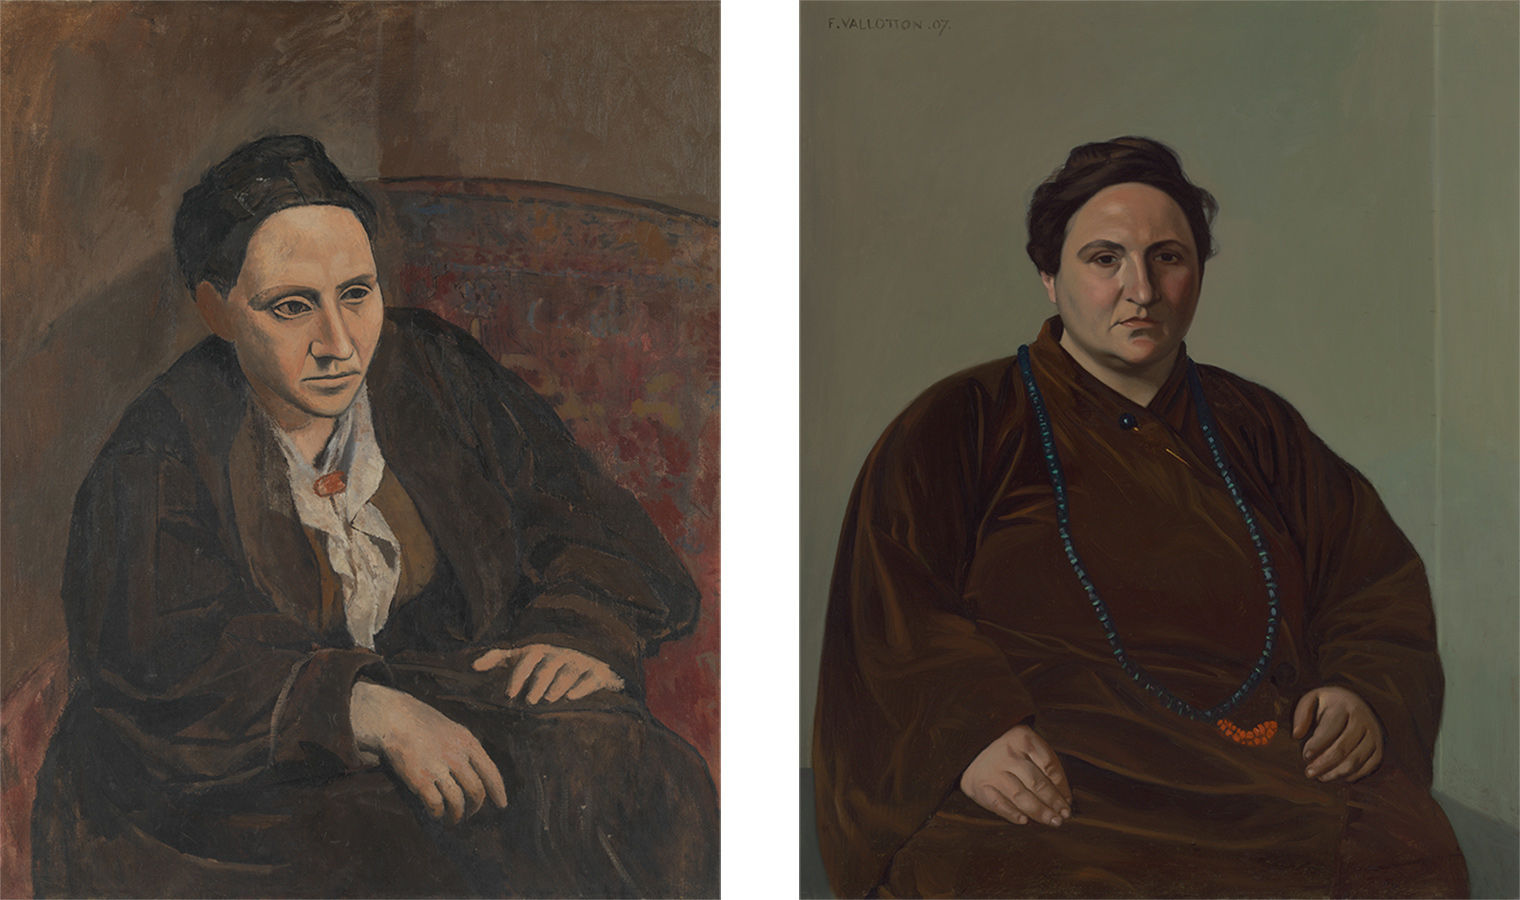 Sitting for Picasso and Vallotton: The Portraits of Gertrude Stein